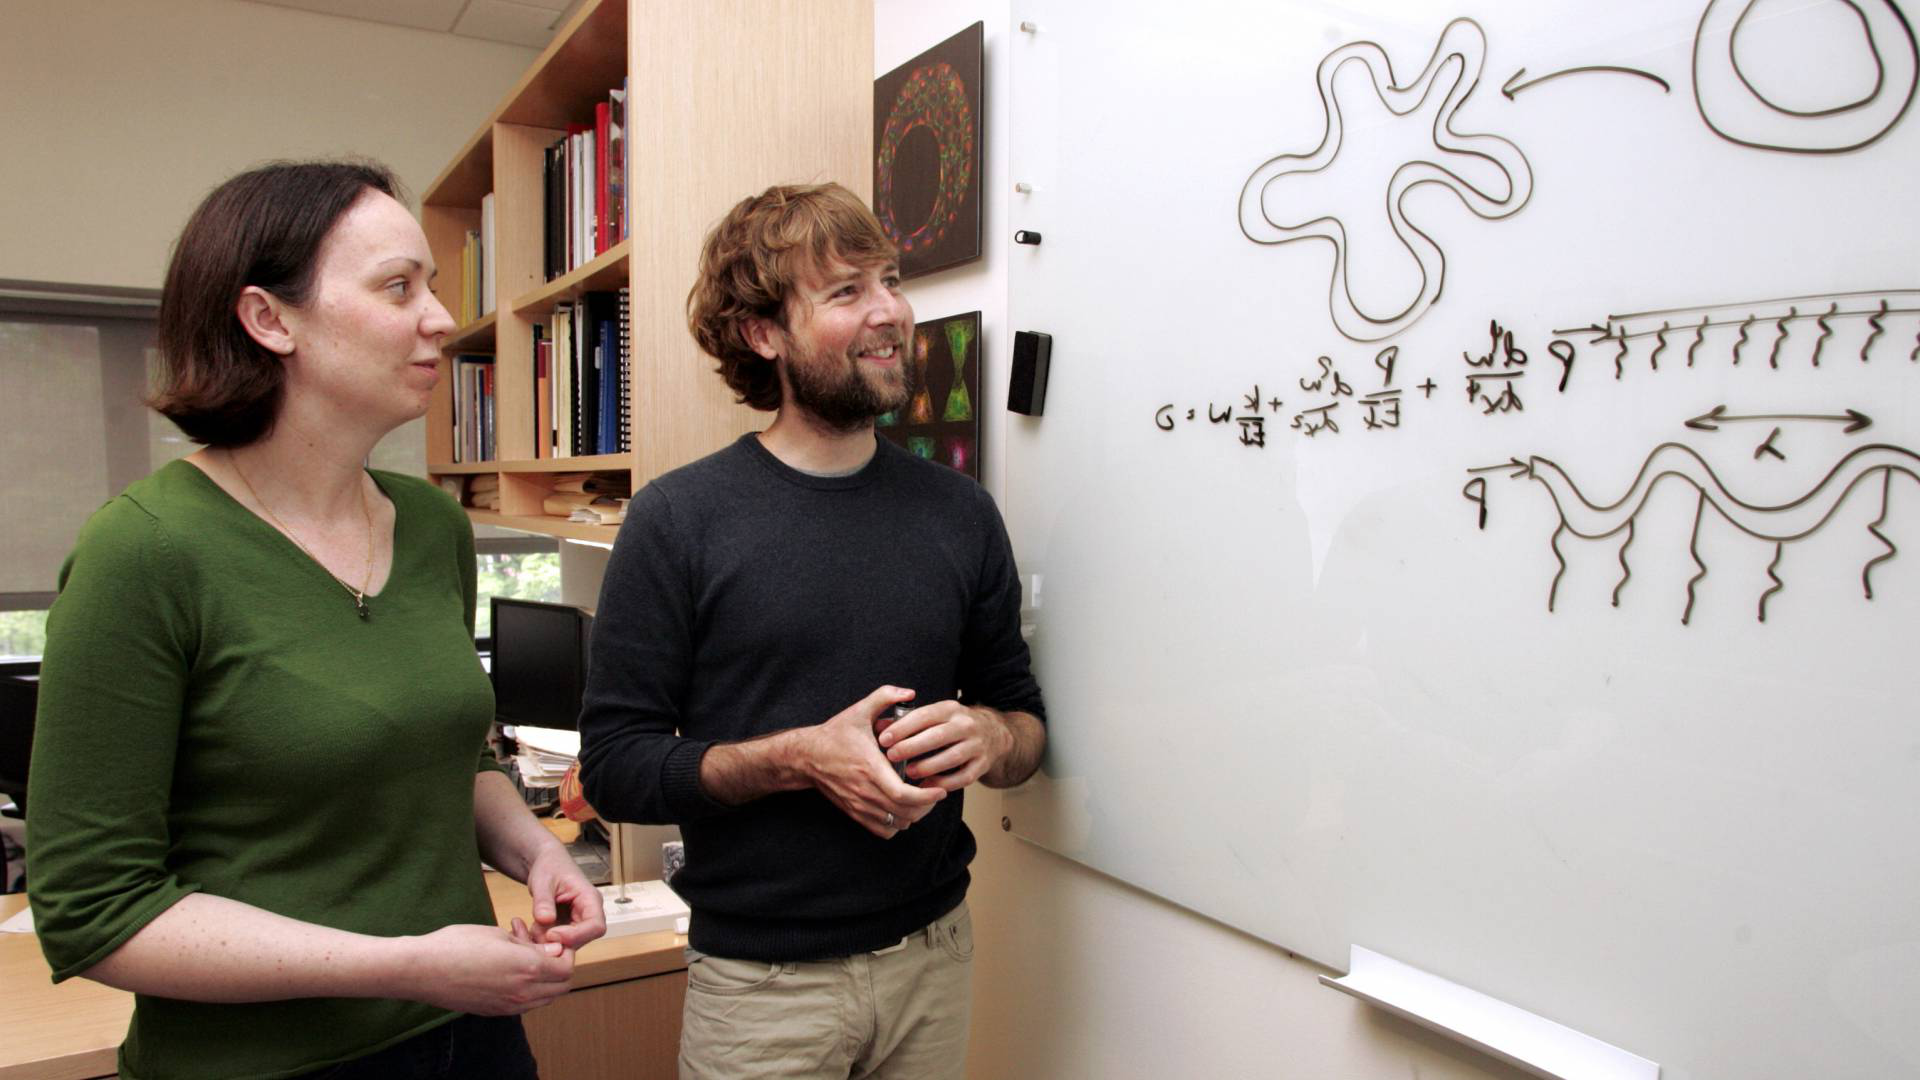 CBE professor Celeste Nelson and engineering graduate student Victor Varner